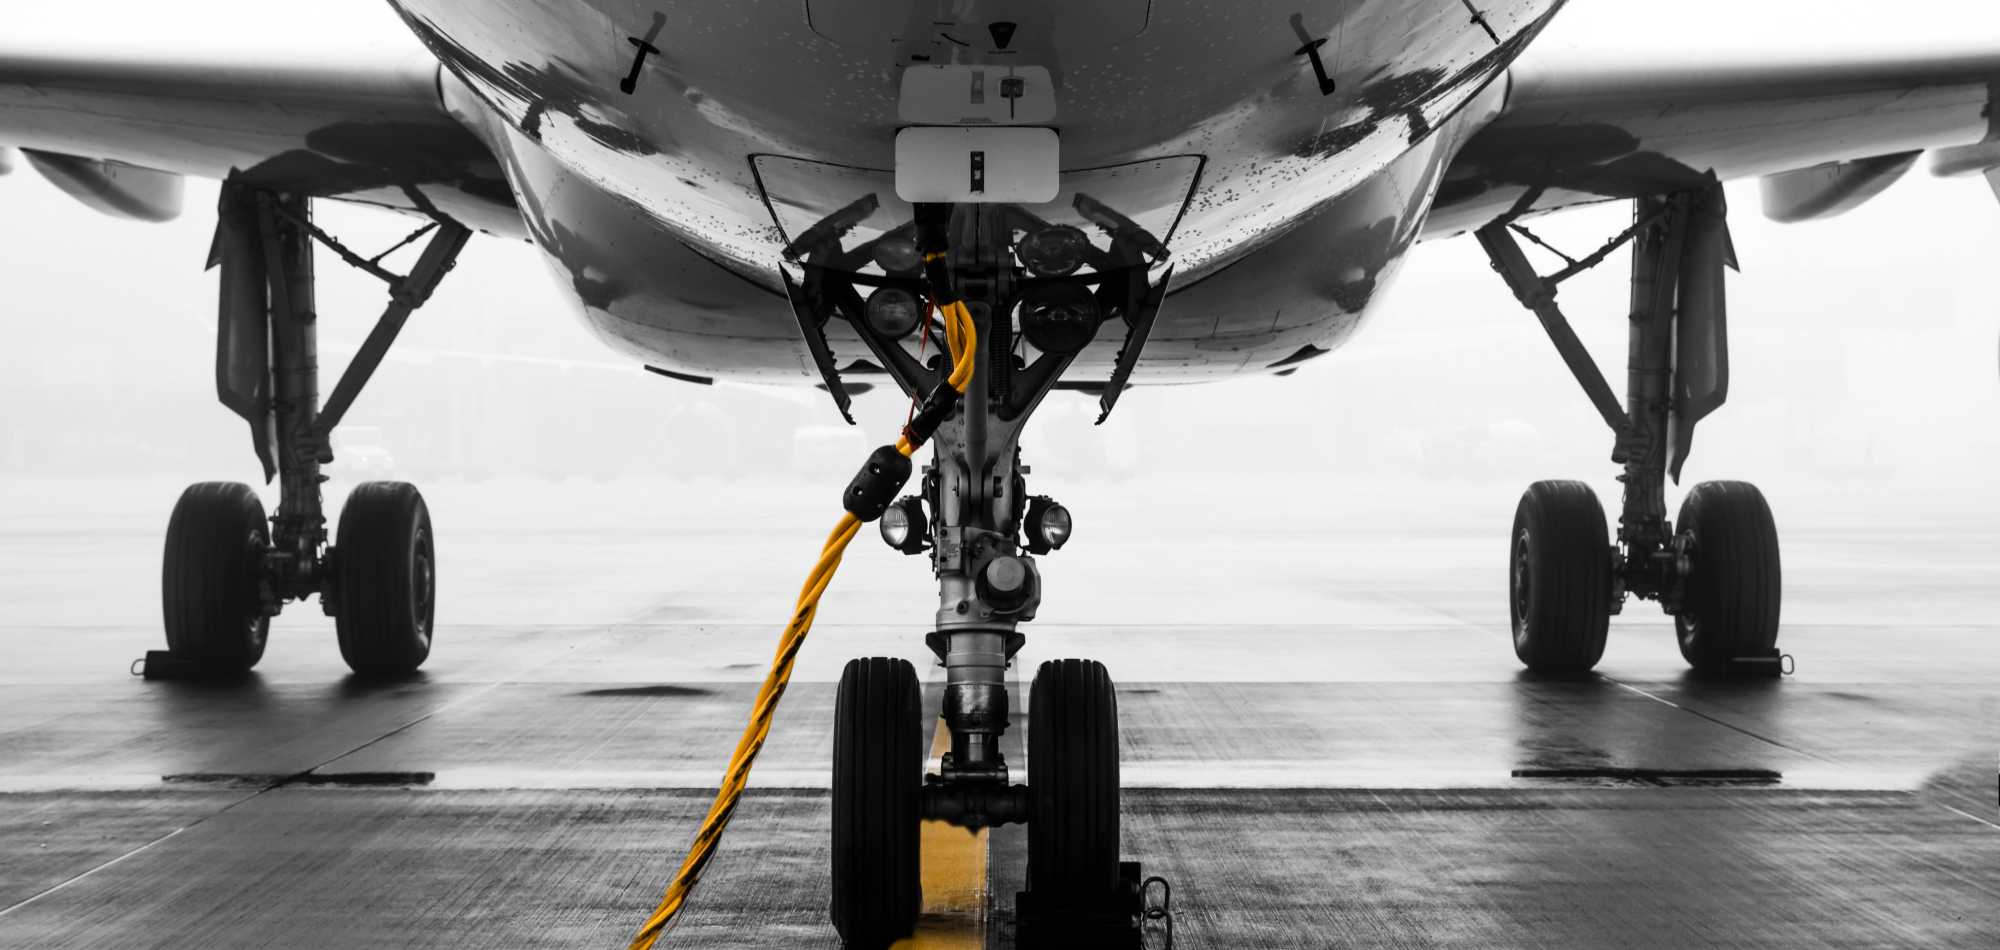 gray-air-vehicle-with-yellow-coated-cable-around-docking-2315265